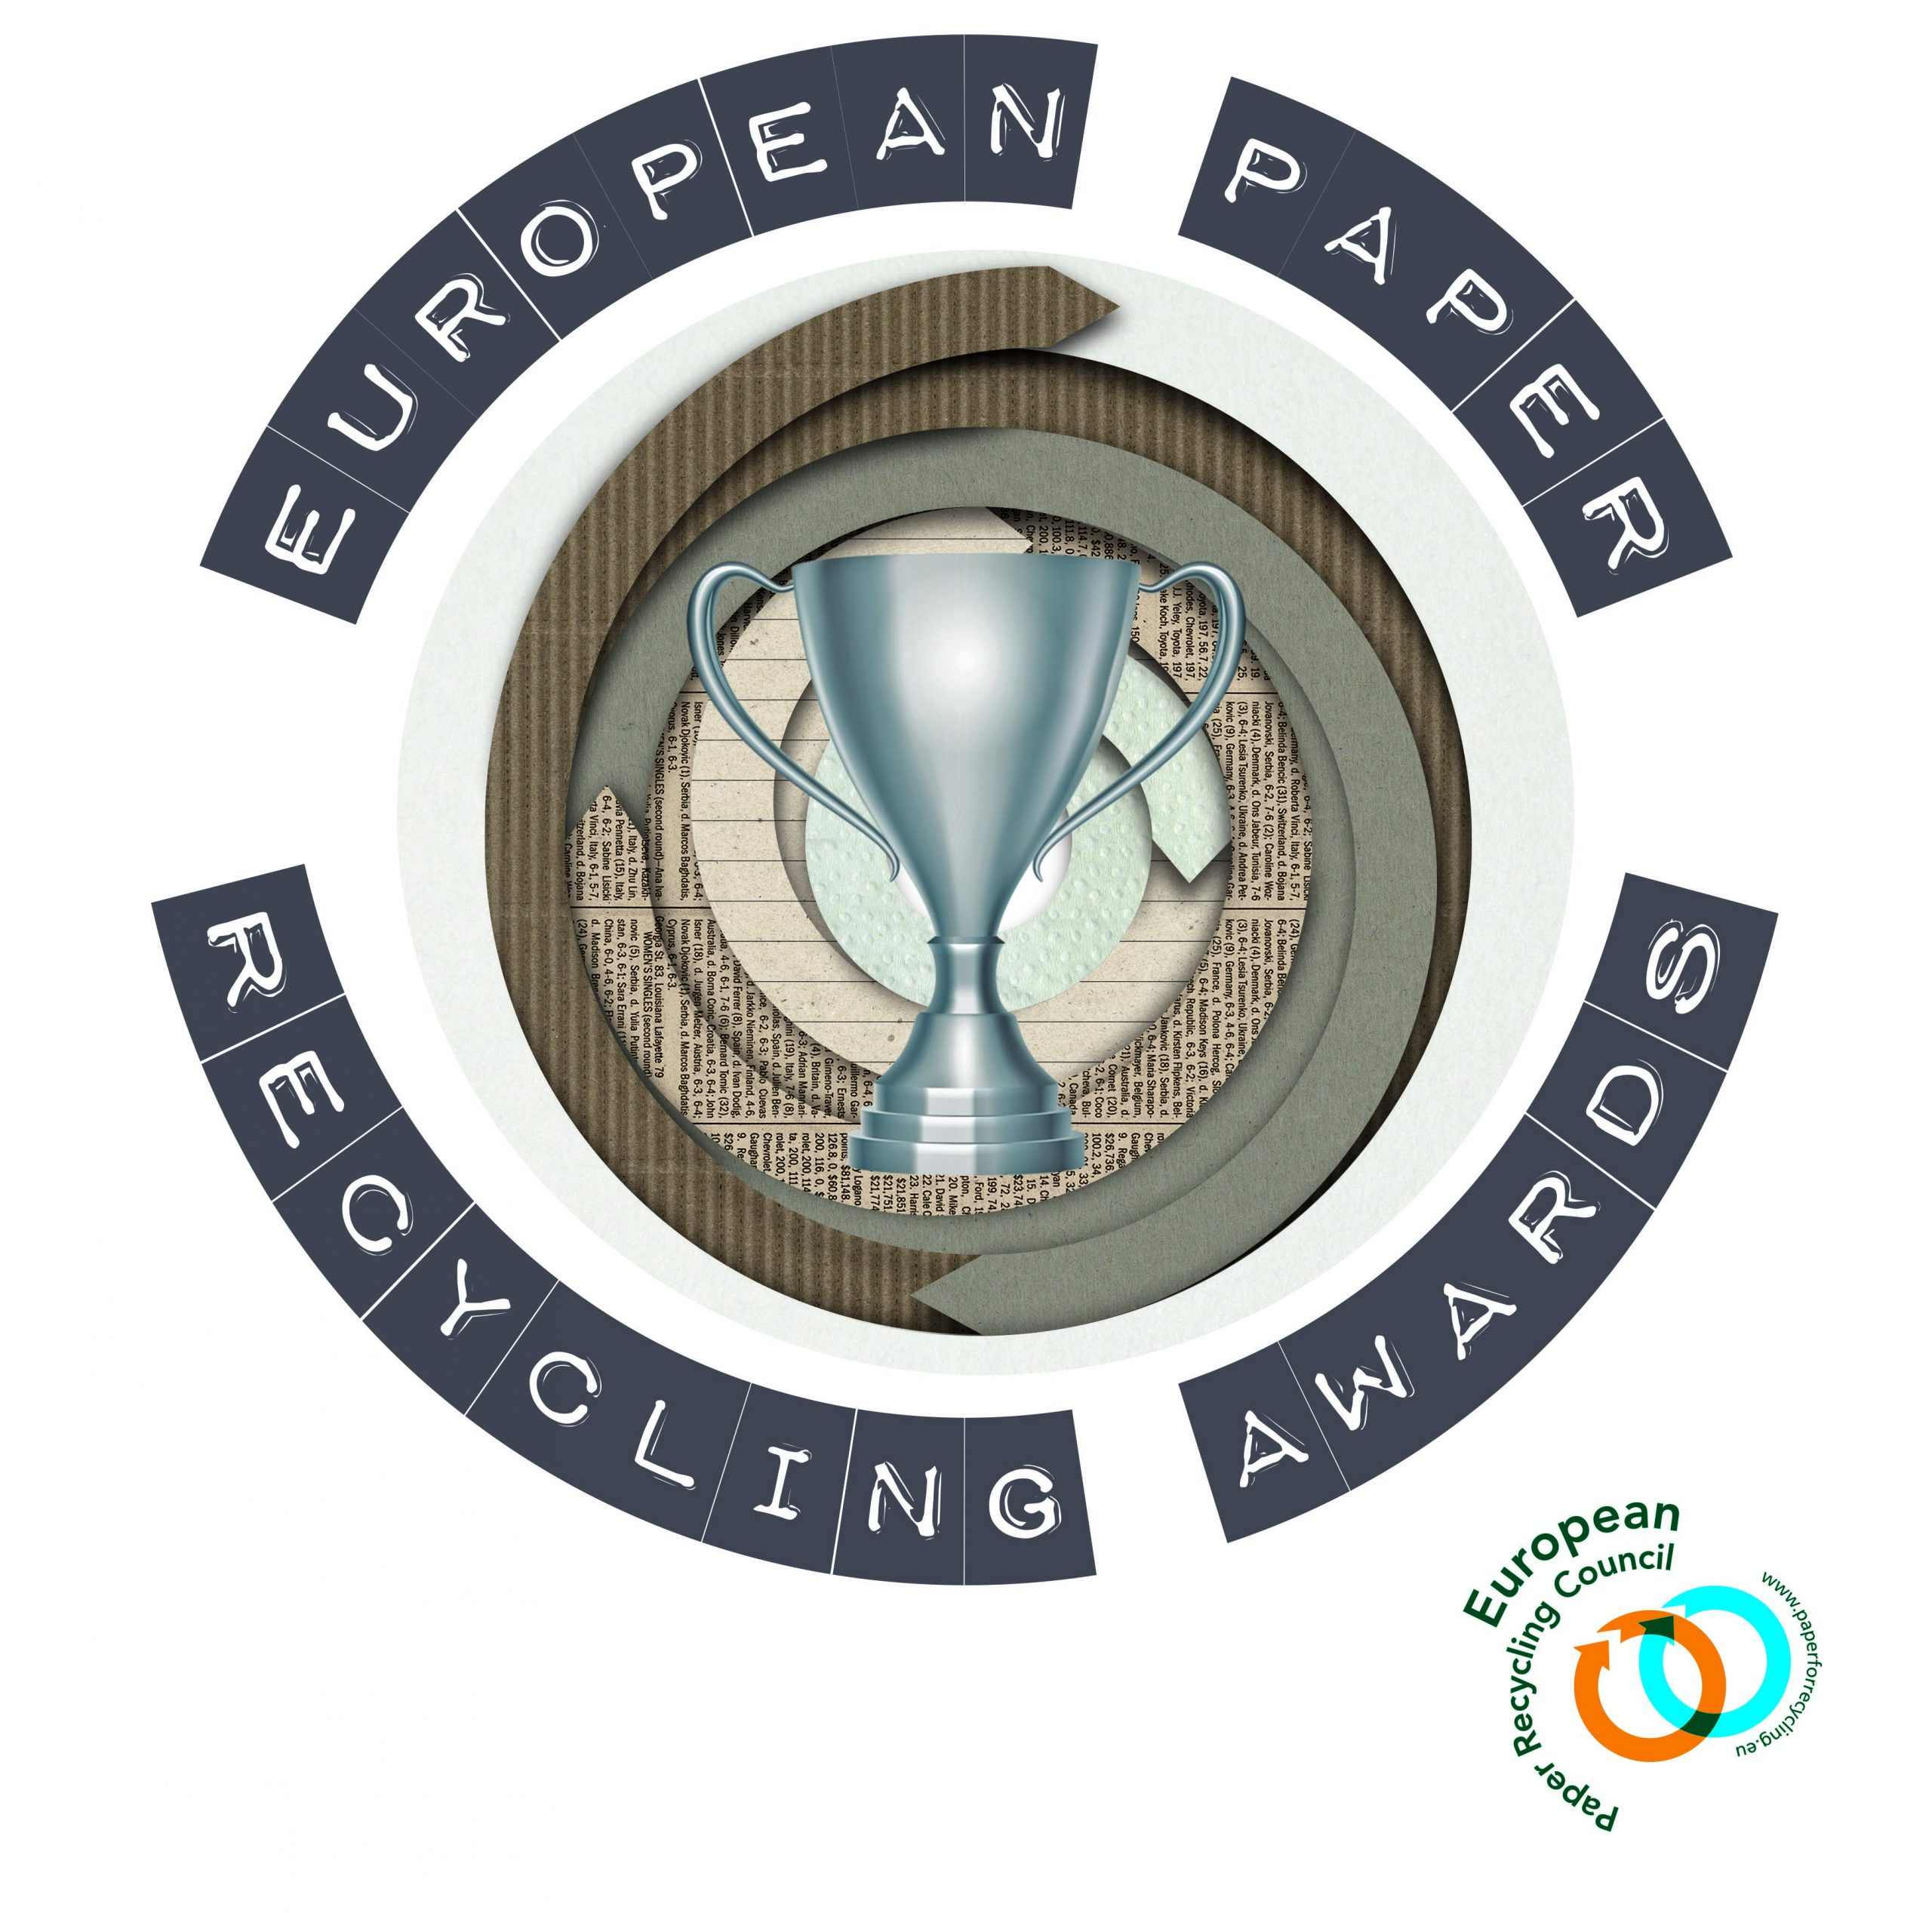 Recycling the European Paper Recycling Awards, entries now being accepted for the 6th edition!